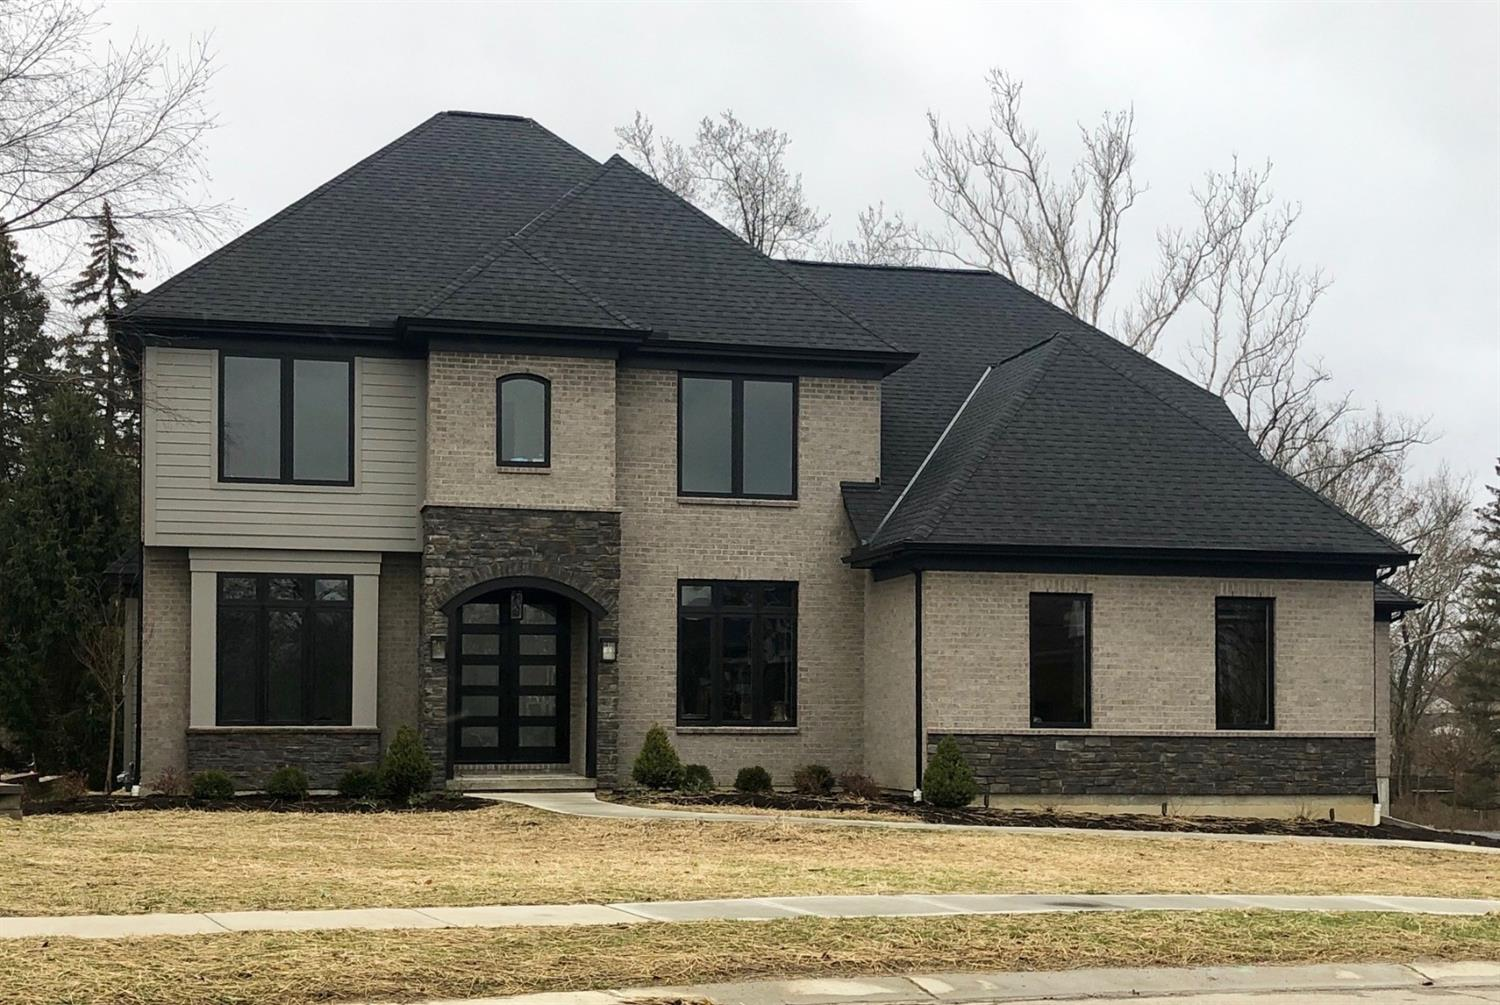 anderson oh real estate for sale rh sibcycline com